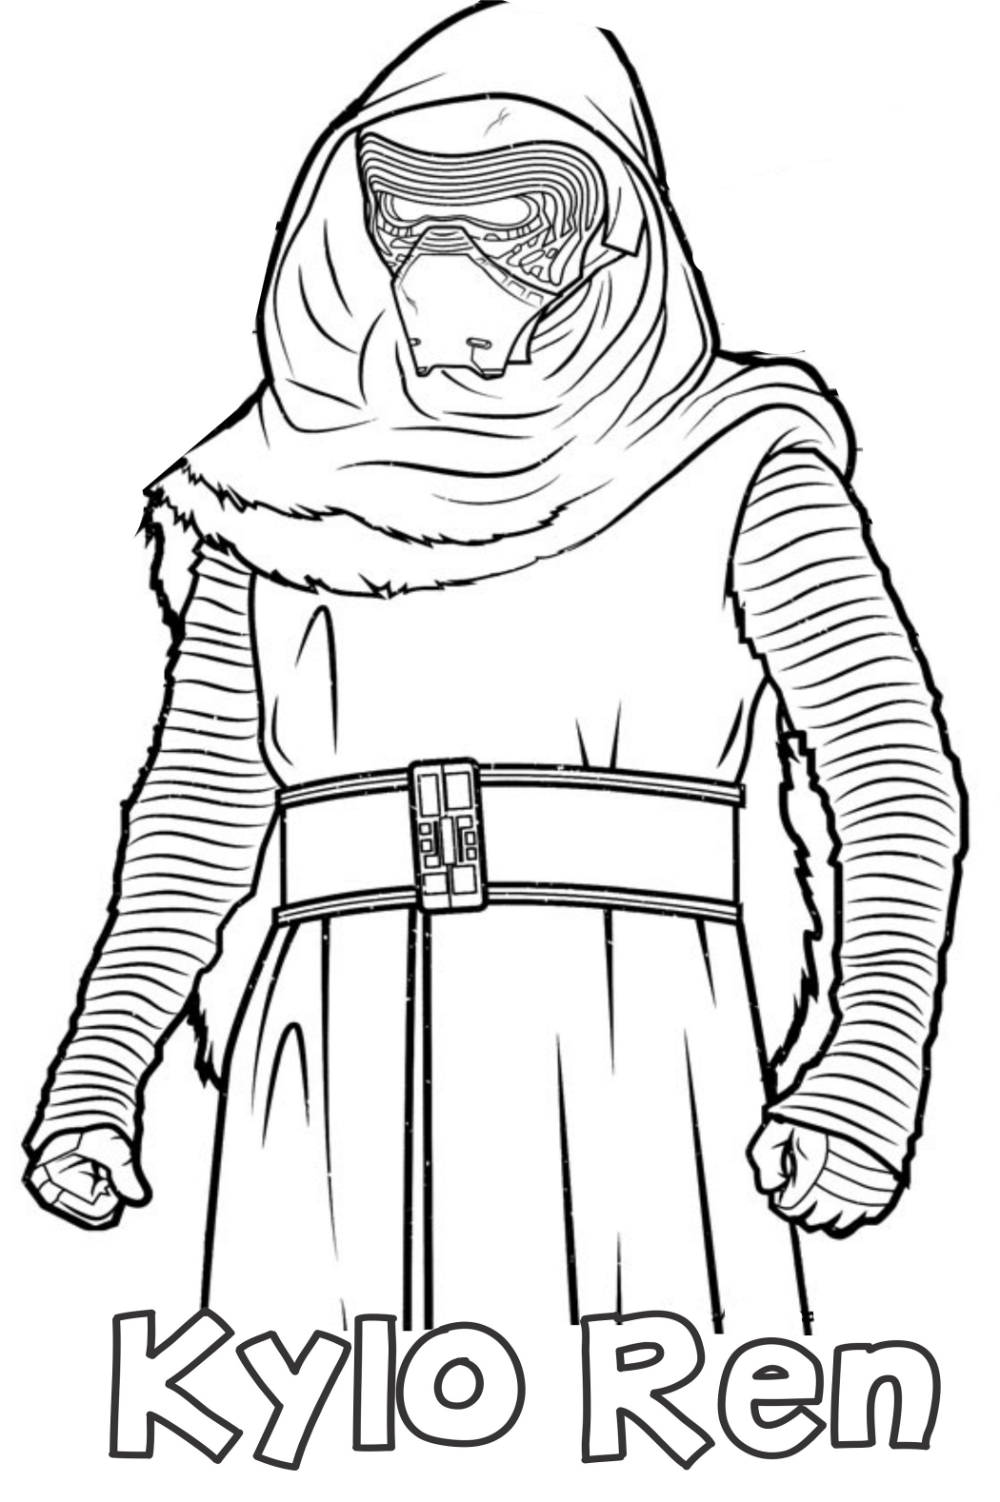 Kylo Ren Coloring Page Cute 101 Worksheets Coloring Pages For Kids Coloring Pages Star Coloring Pages